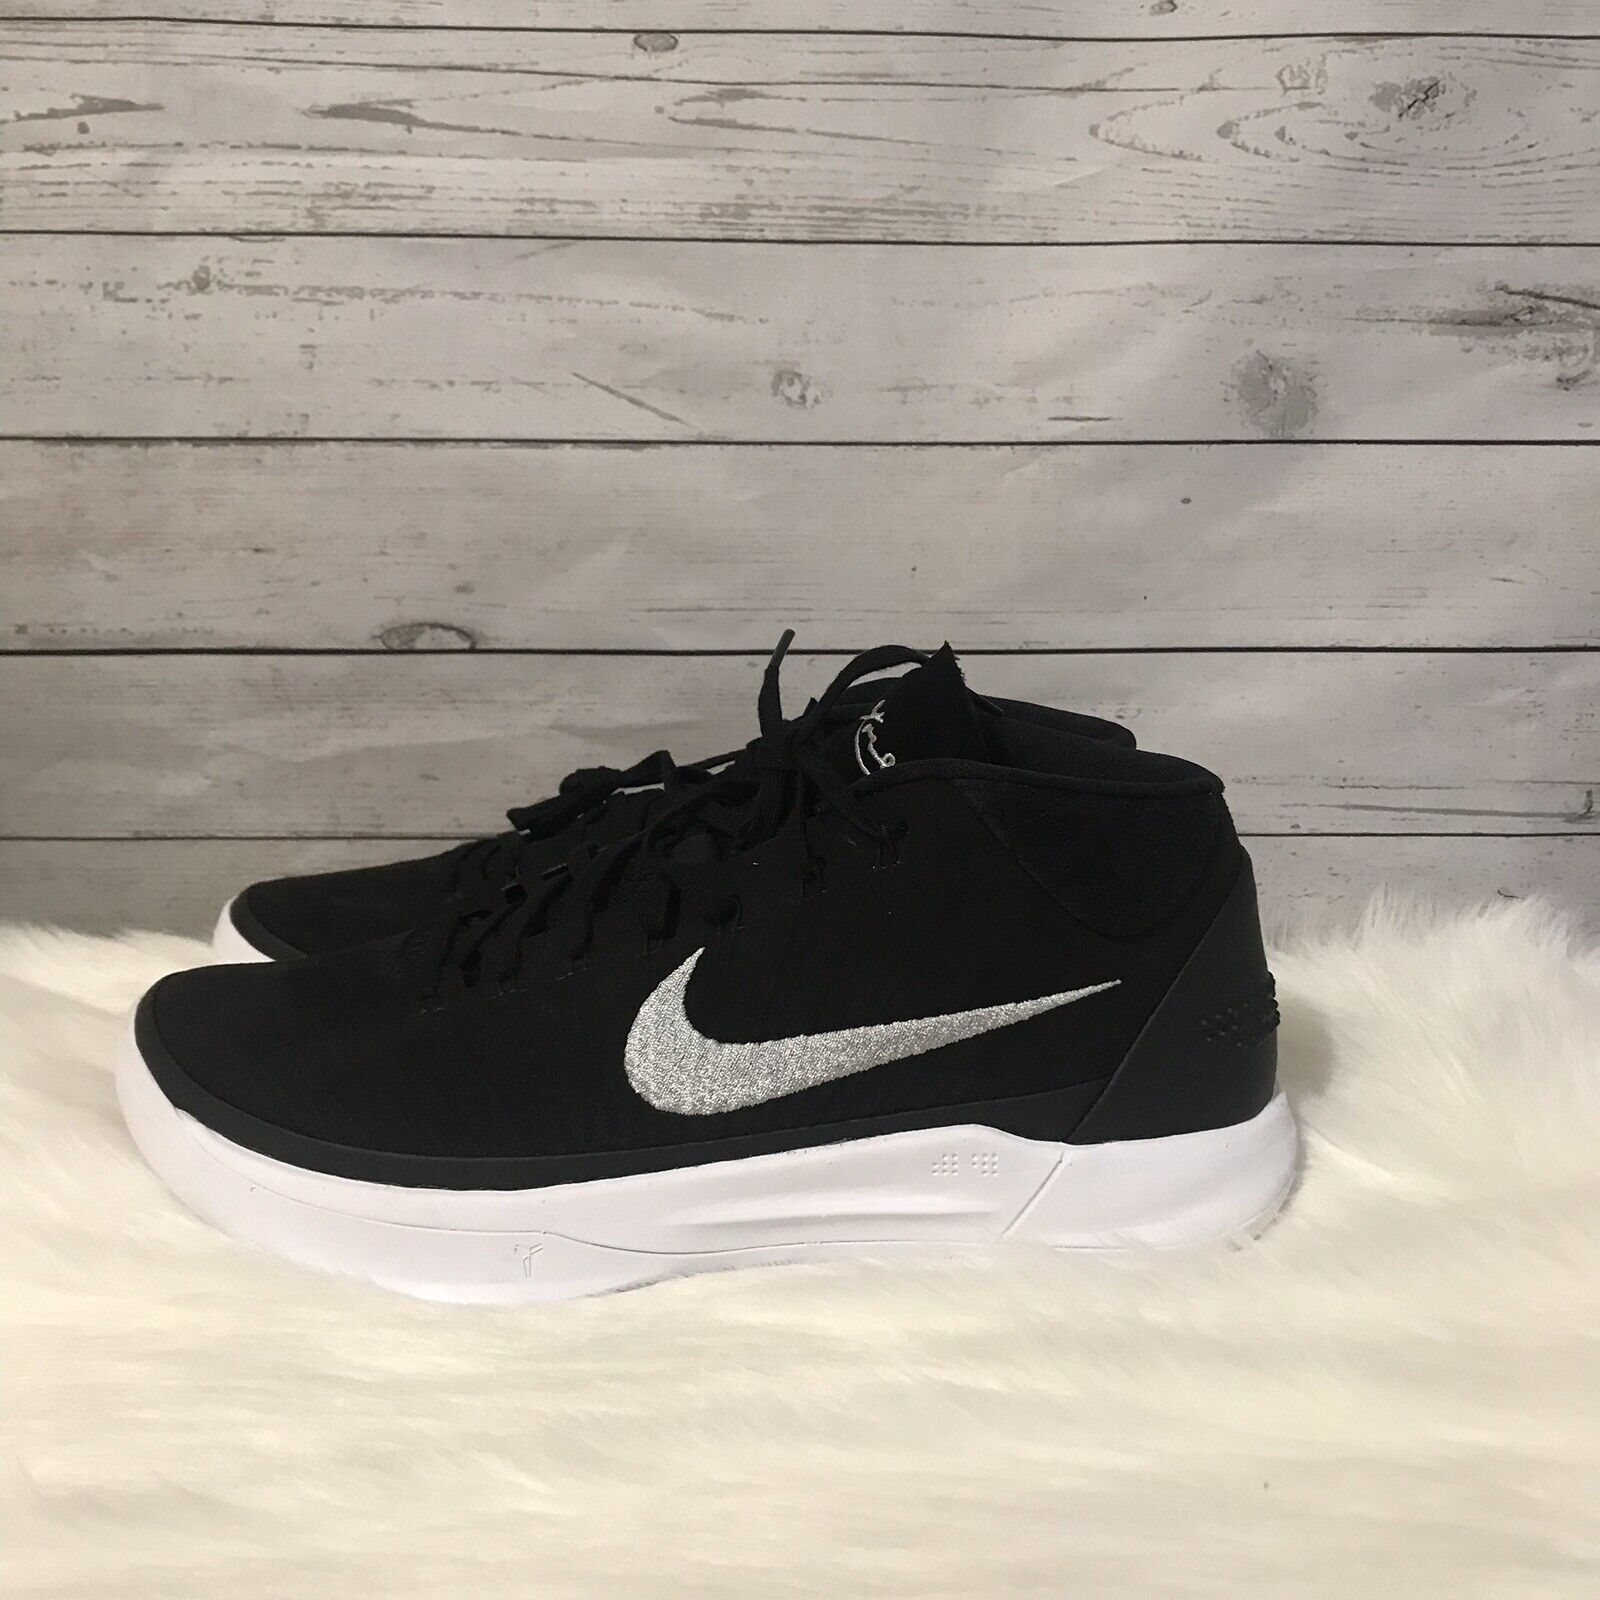 New Nike Kobe AD Mid TB Promo Mens Size 10.5 Basketball shoes Black